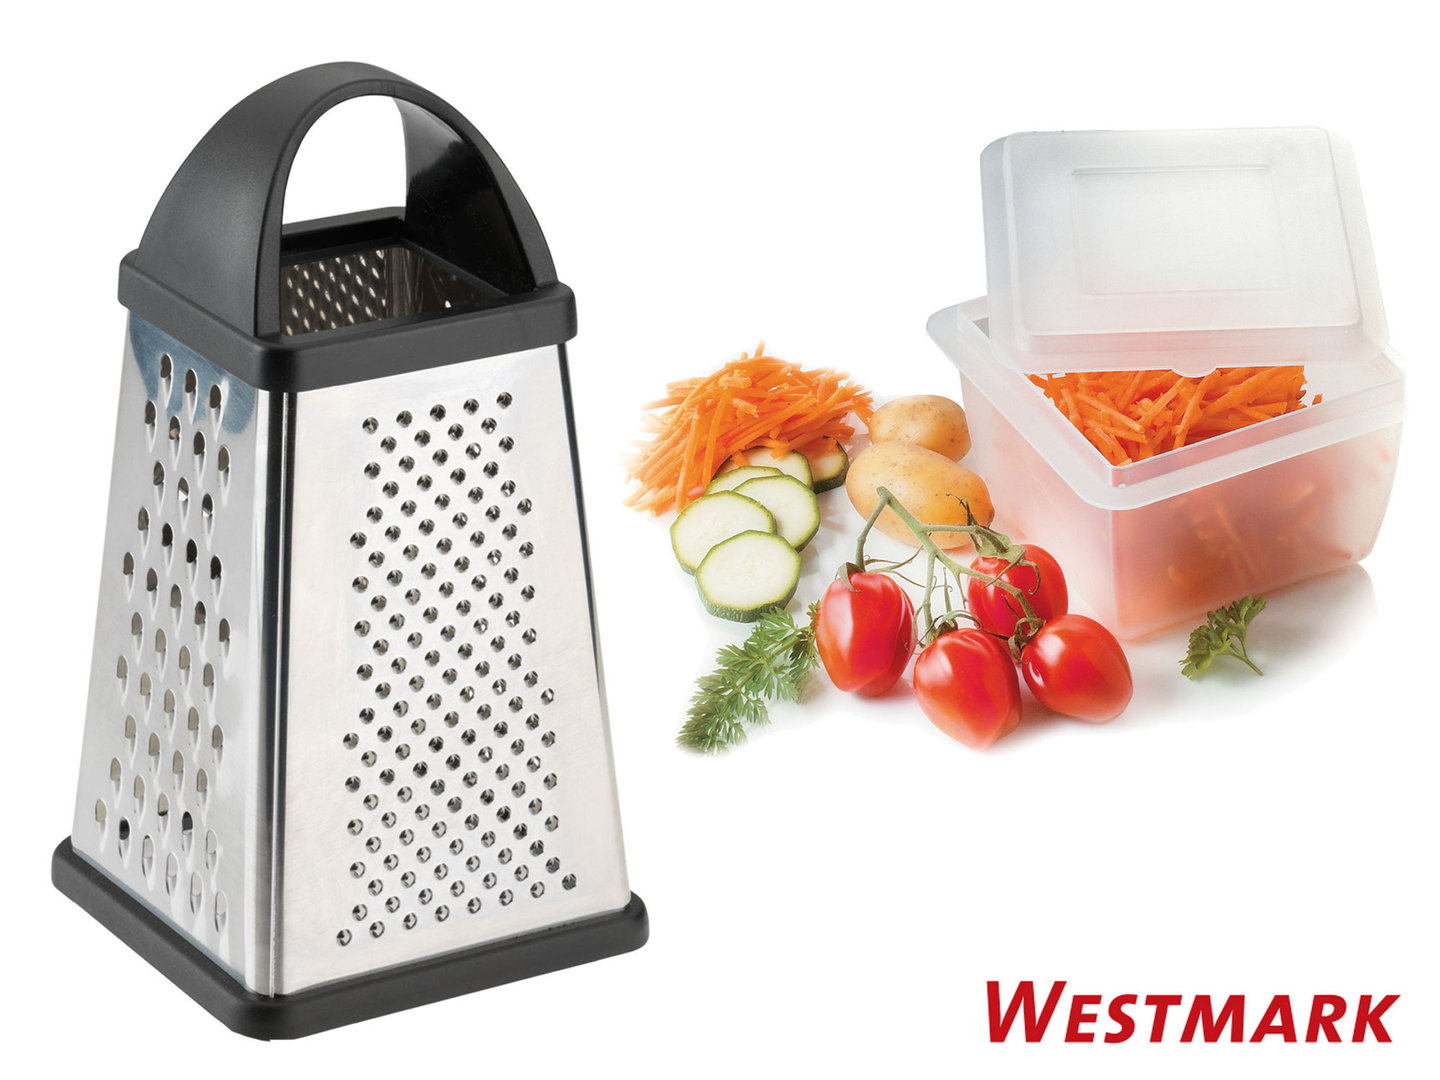 WESTMARK square grater with food collector